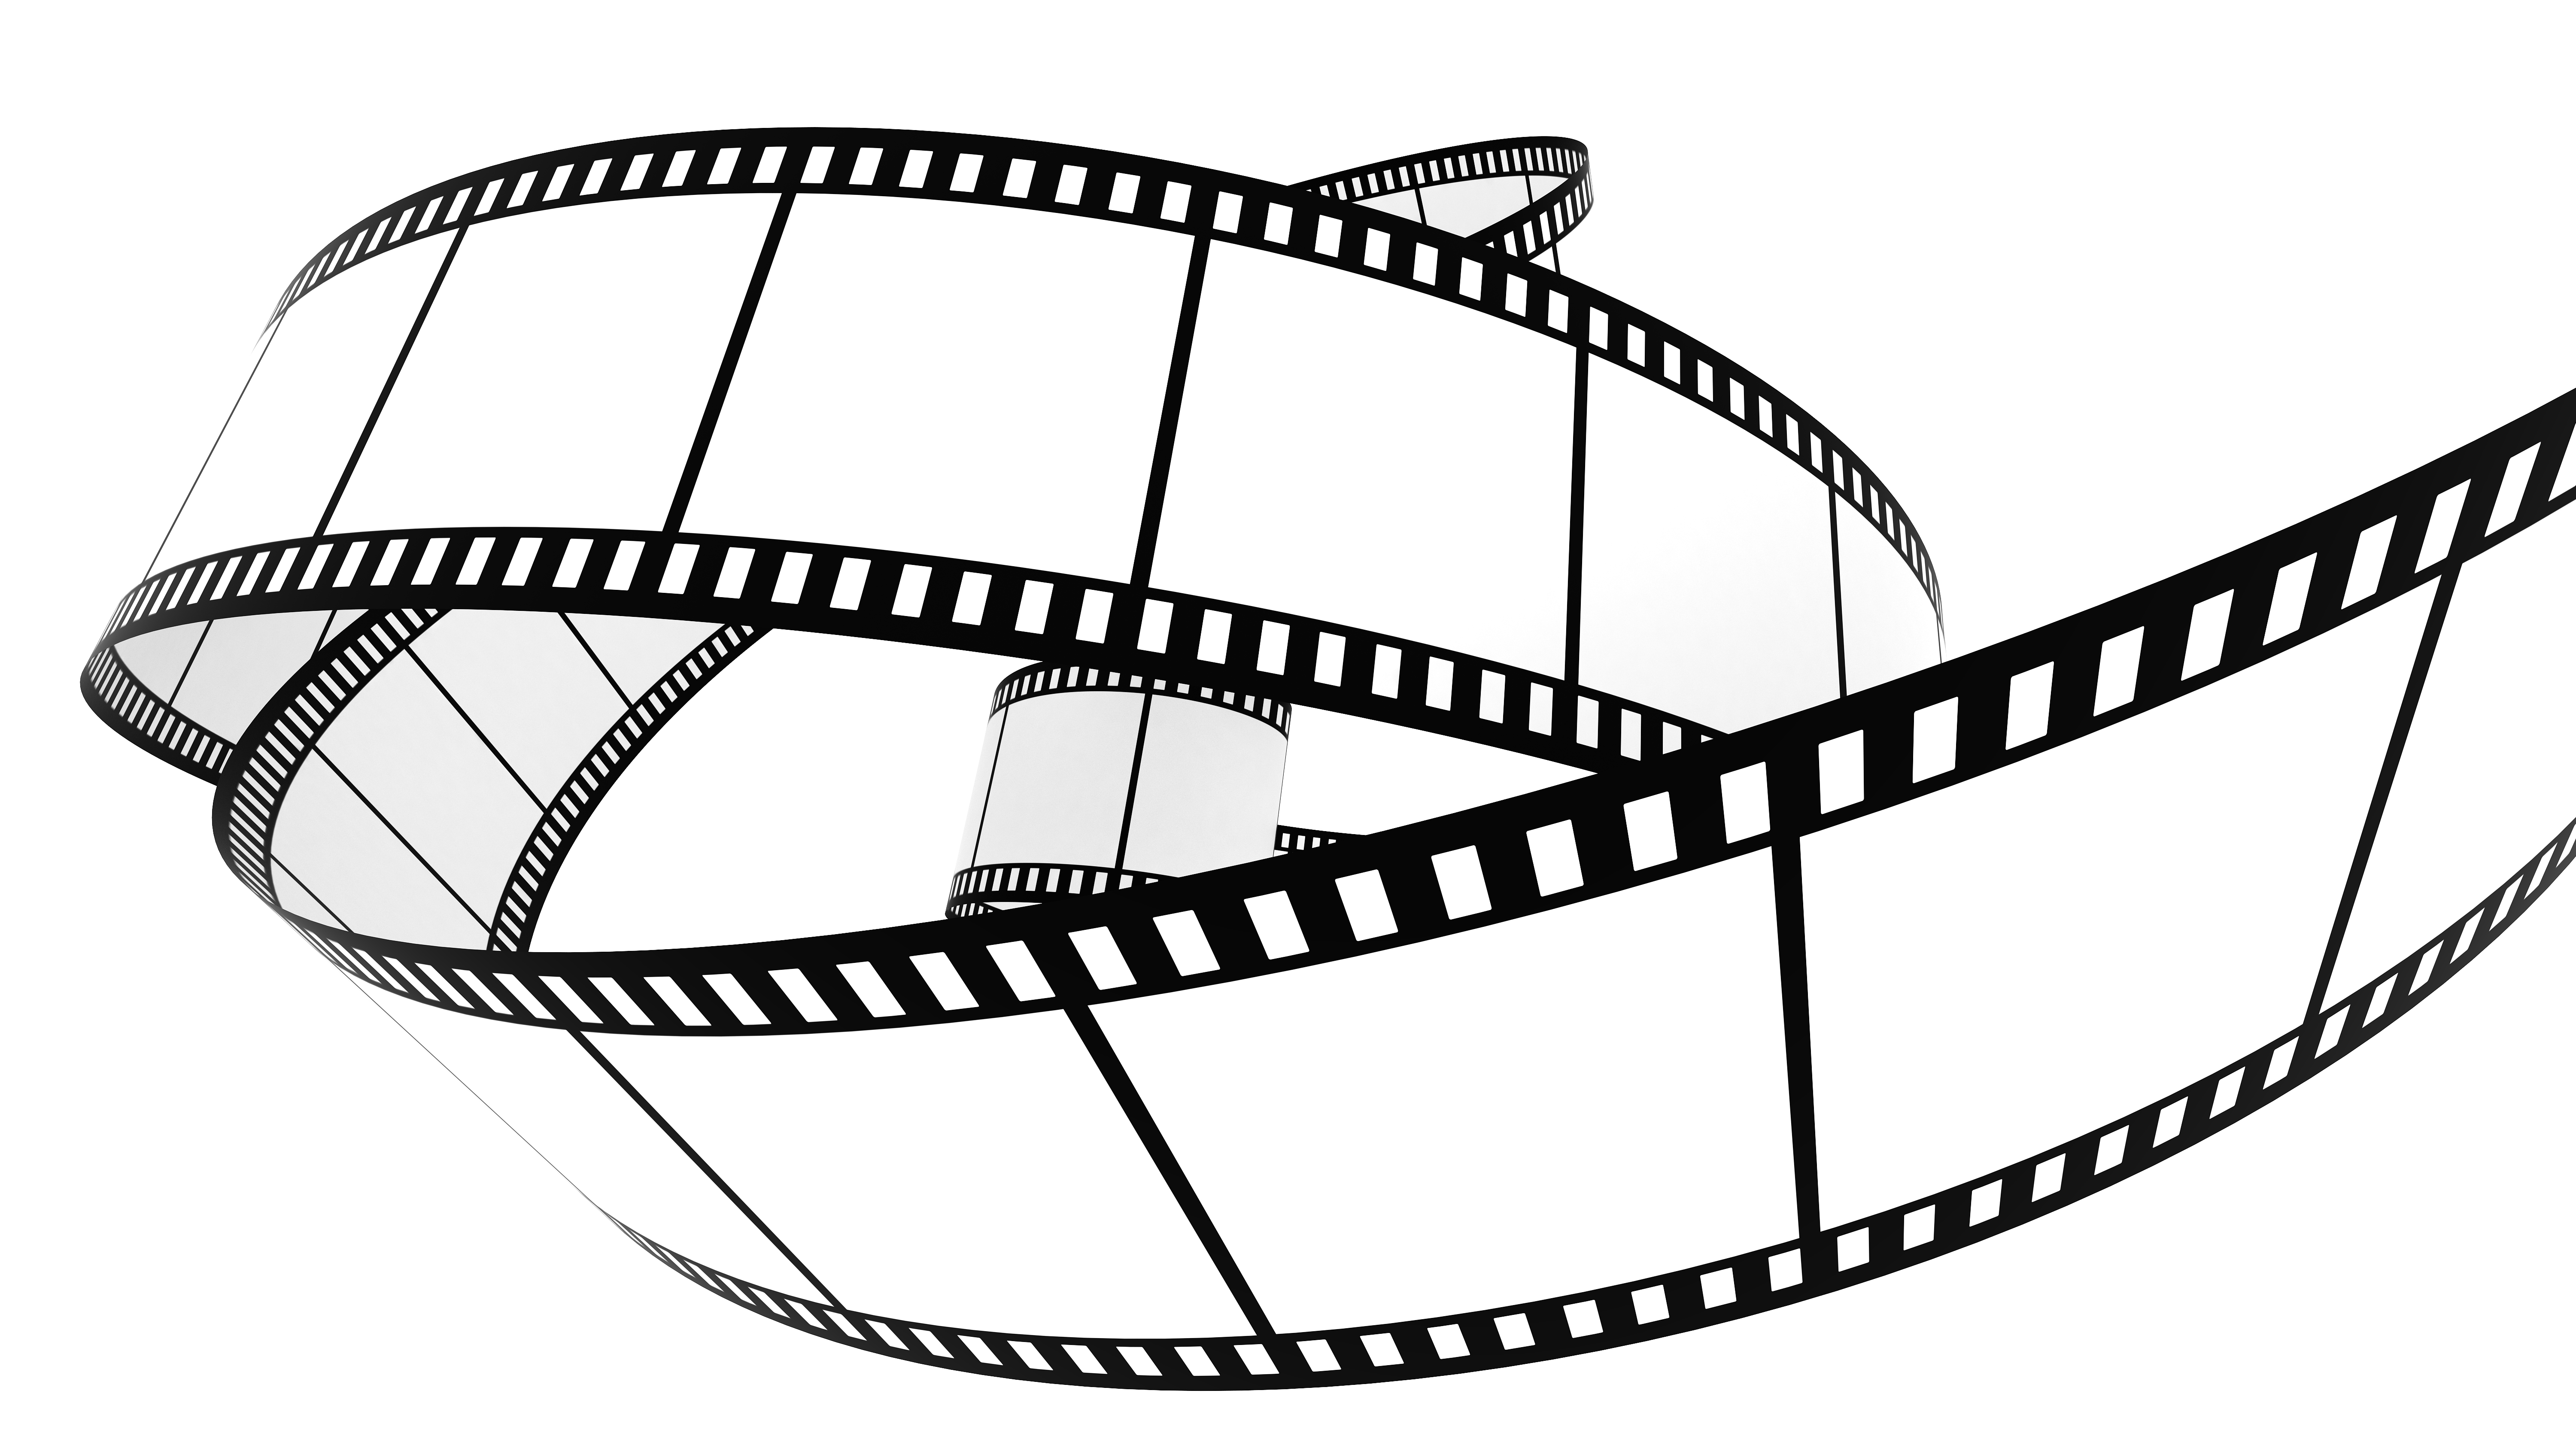 image of a white and black film strip in a circular shape